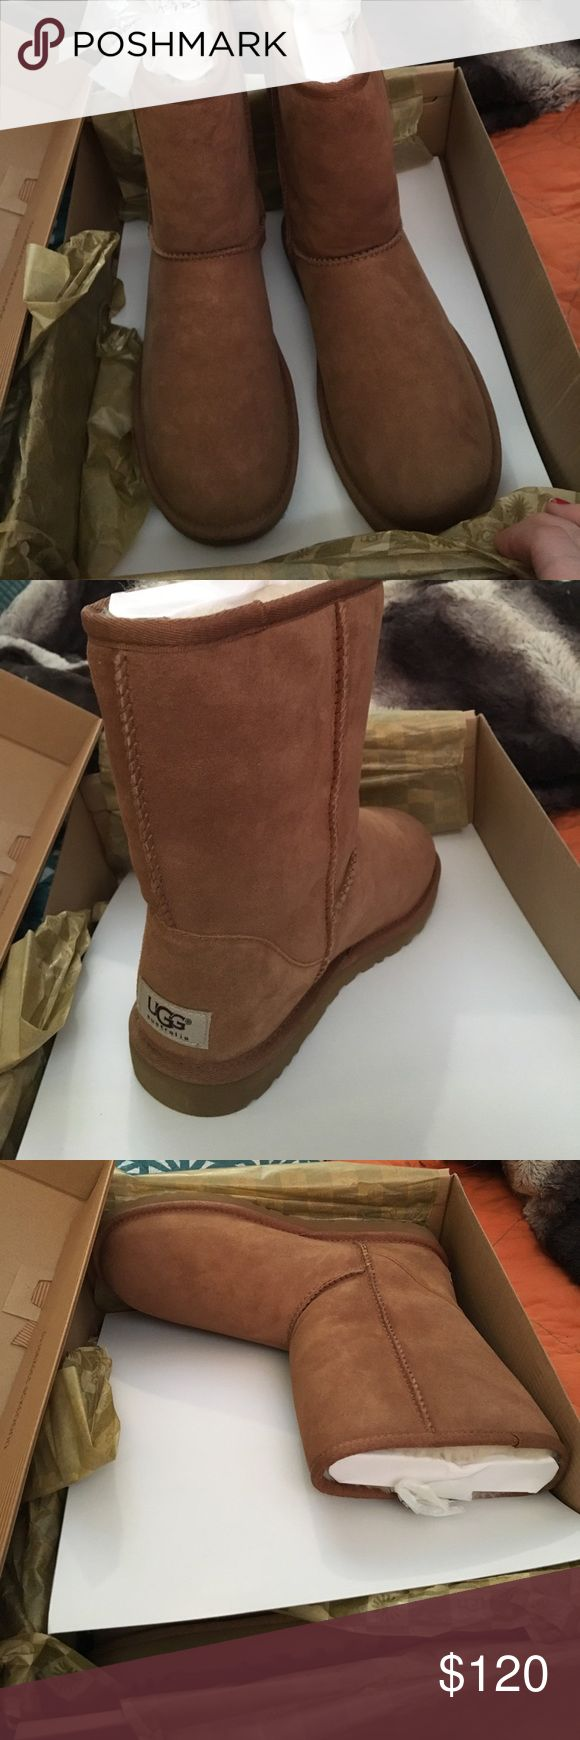 Classic short Ugg's. Hits above ankle. OBO Brand new classic tan short Uggs' never worn, still in box and stickers on bottom of boot. Offers welcome! However don't want to stray way below what I'm asking. UGG Shoes Ankle Boots & Booties